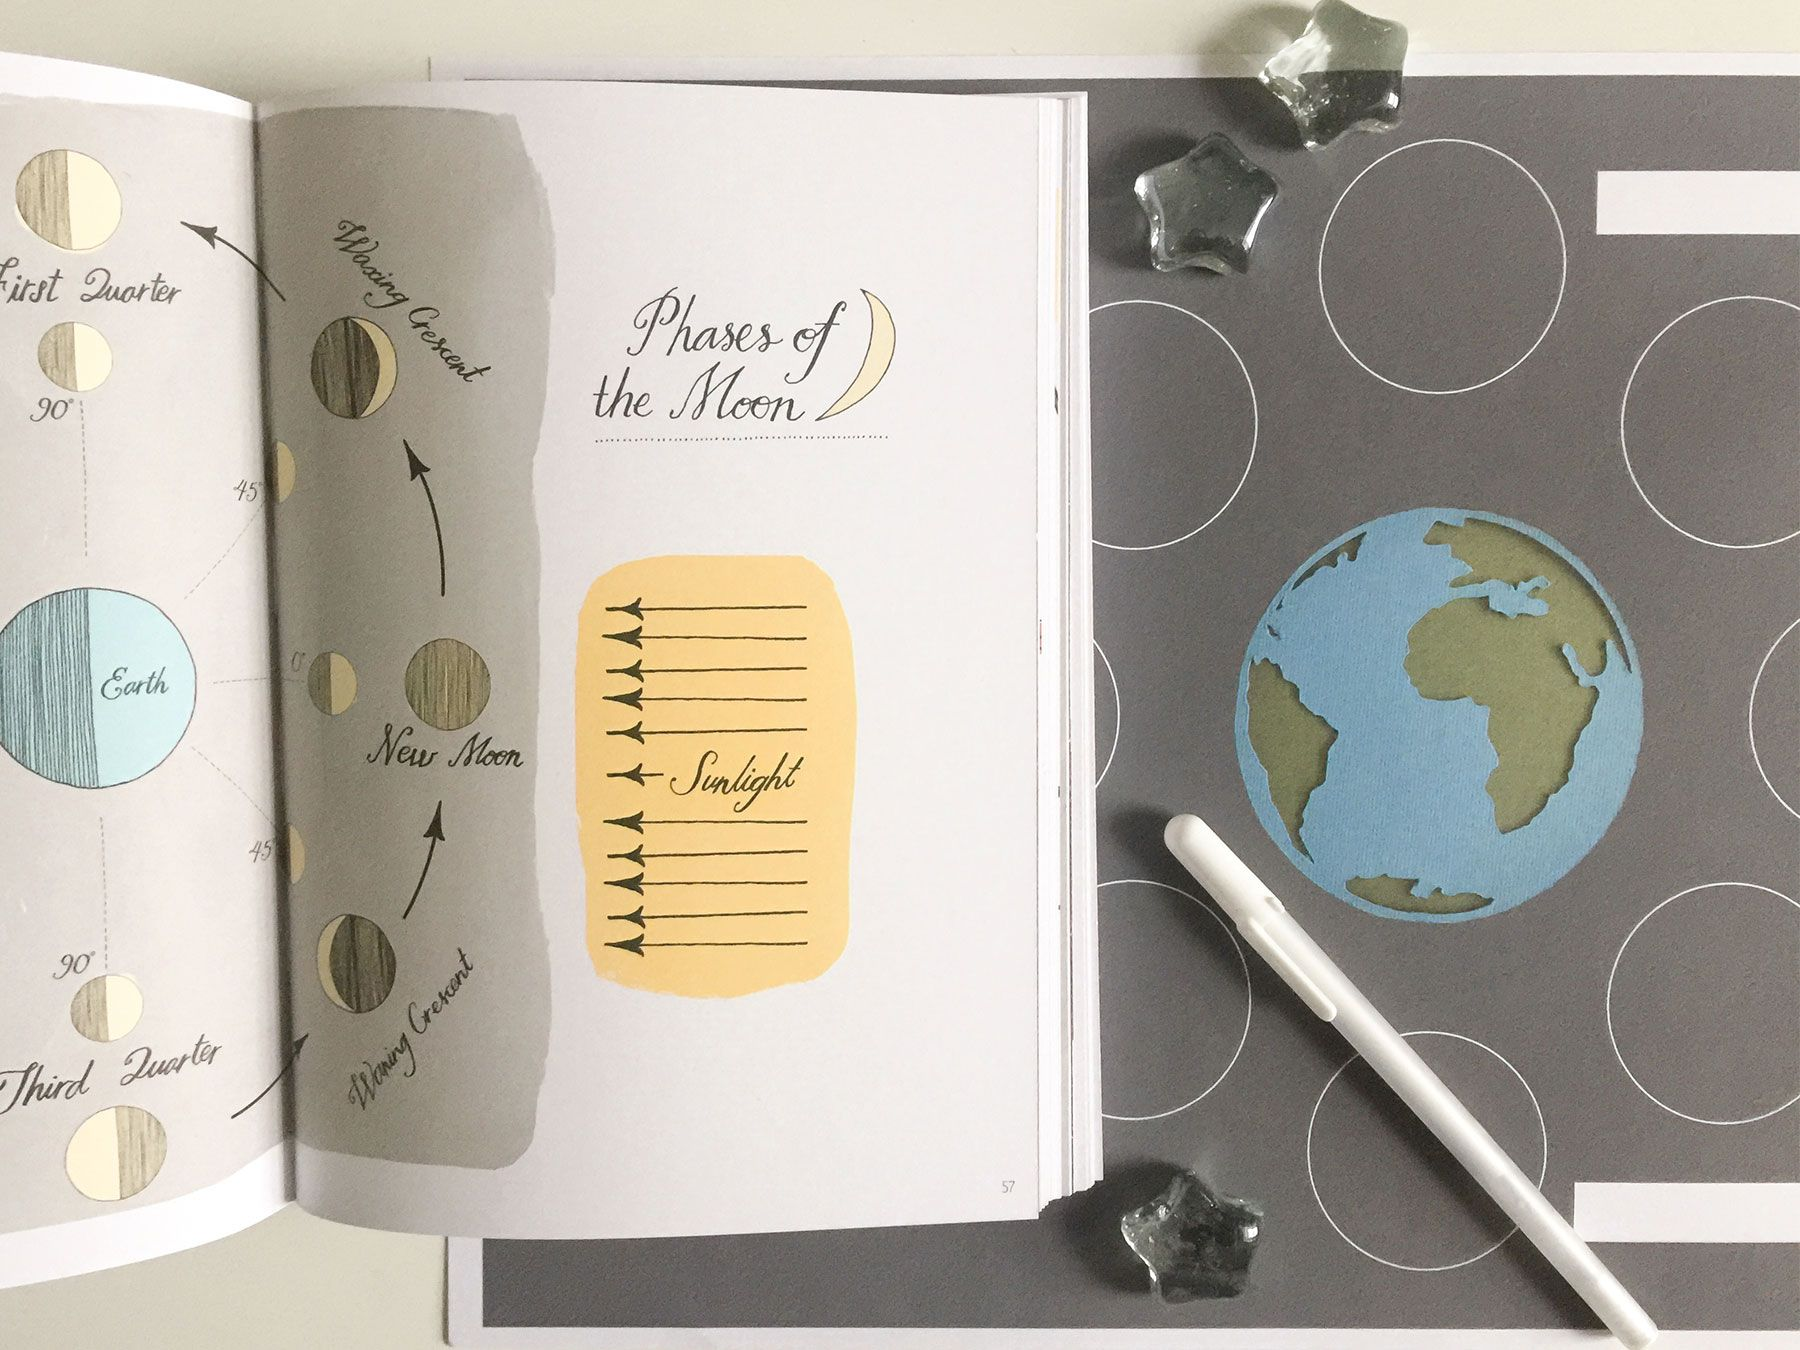 Phases Of The Moon Playful Learning